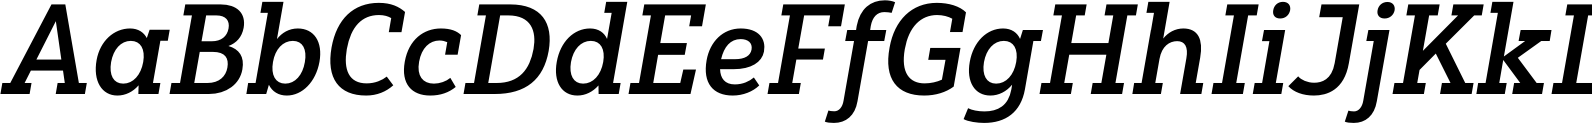 Yorkten Slab Normal Demi Italic Font